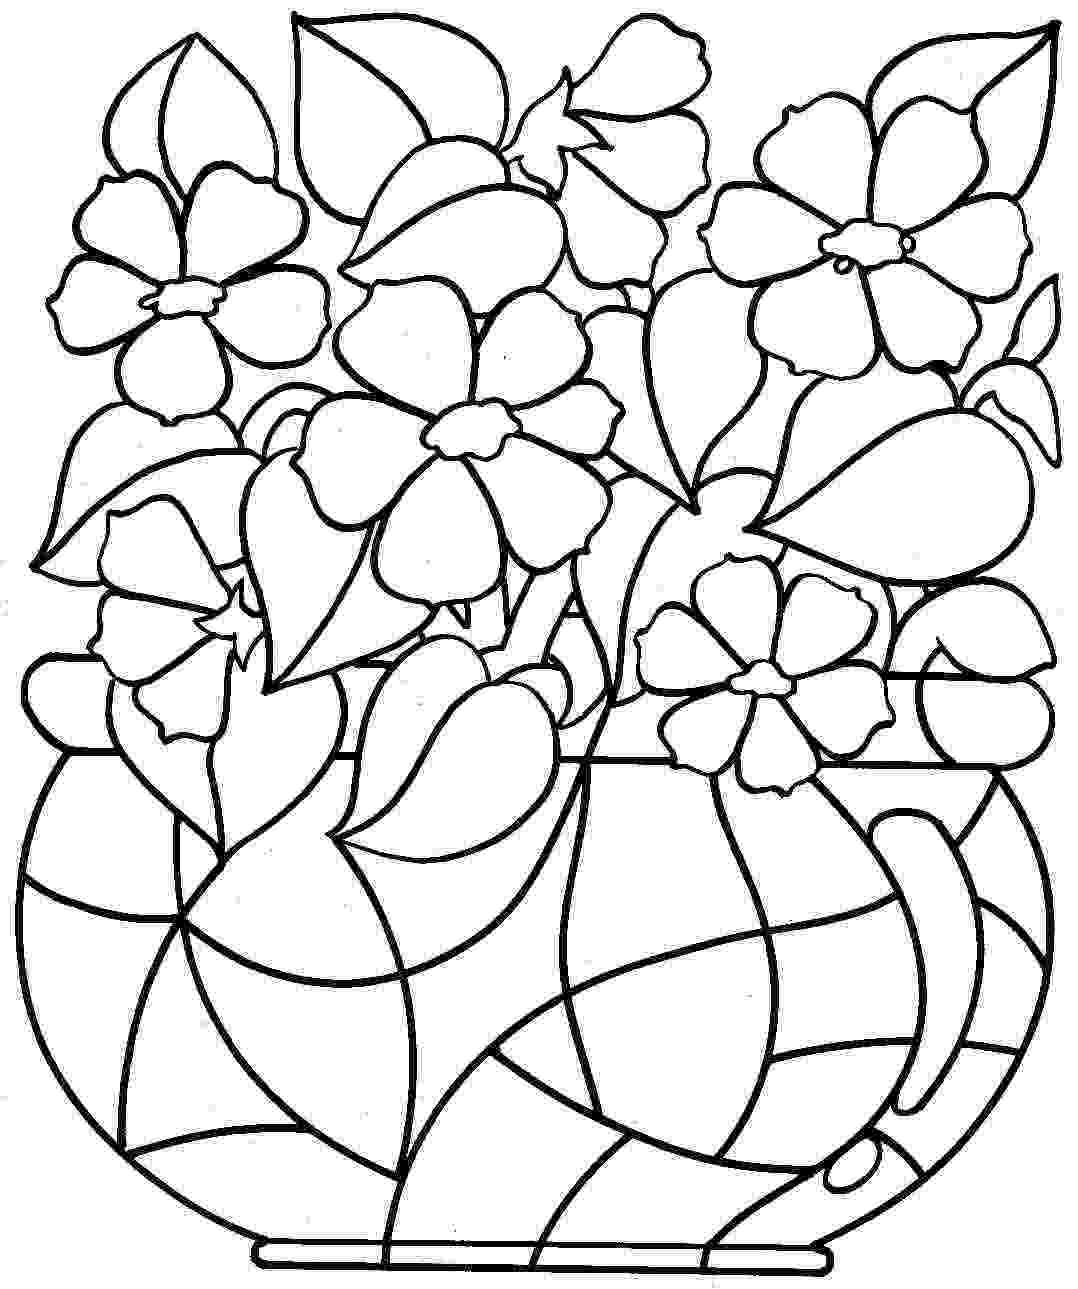 coloring sheets for older students spring coloring pages for older students at getdrawings sheets coloring older students for